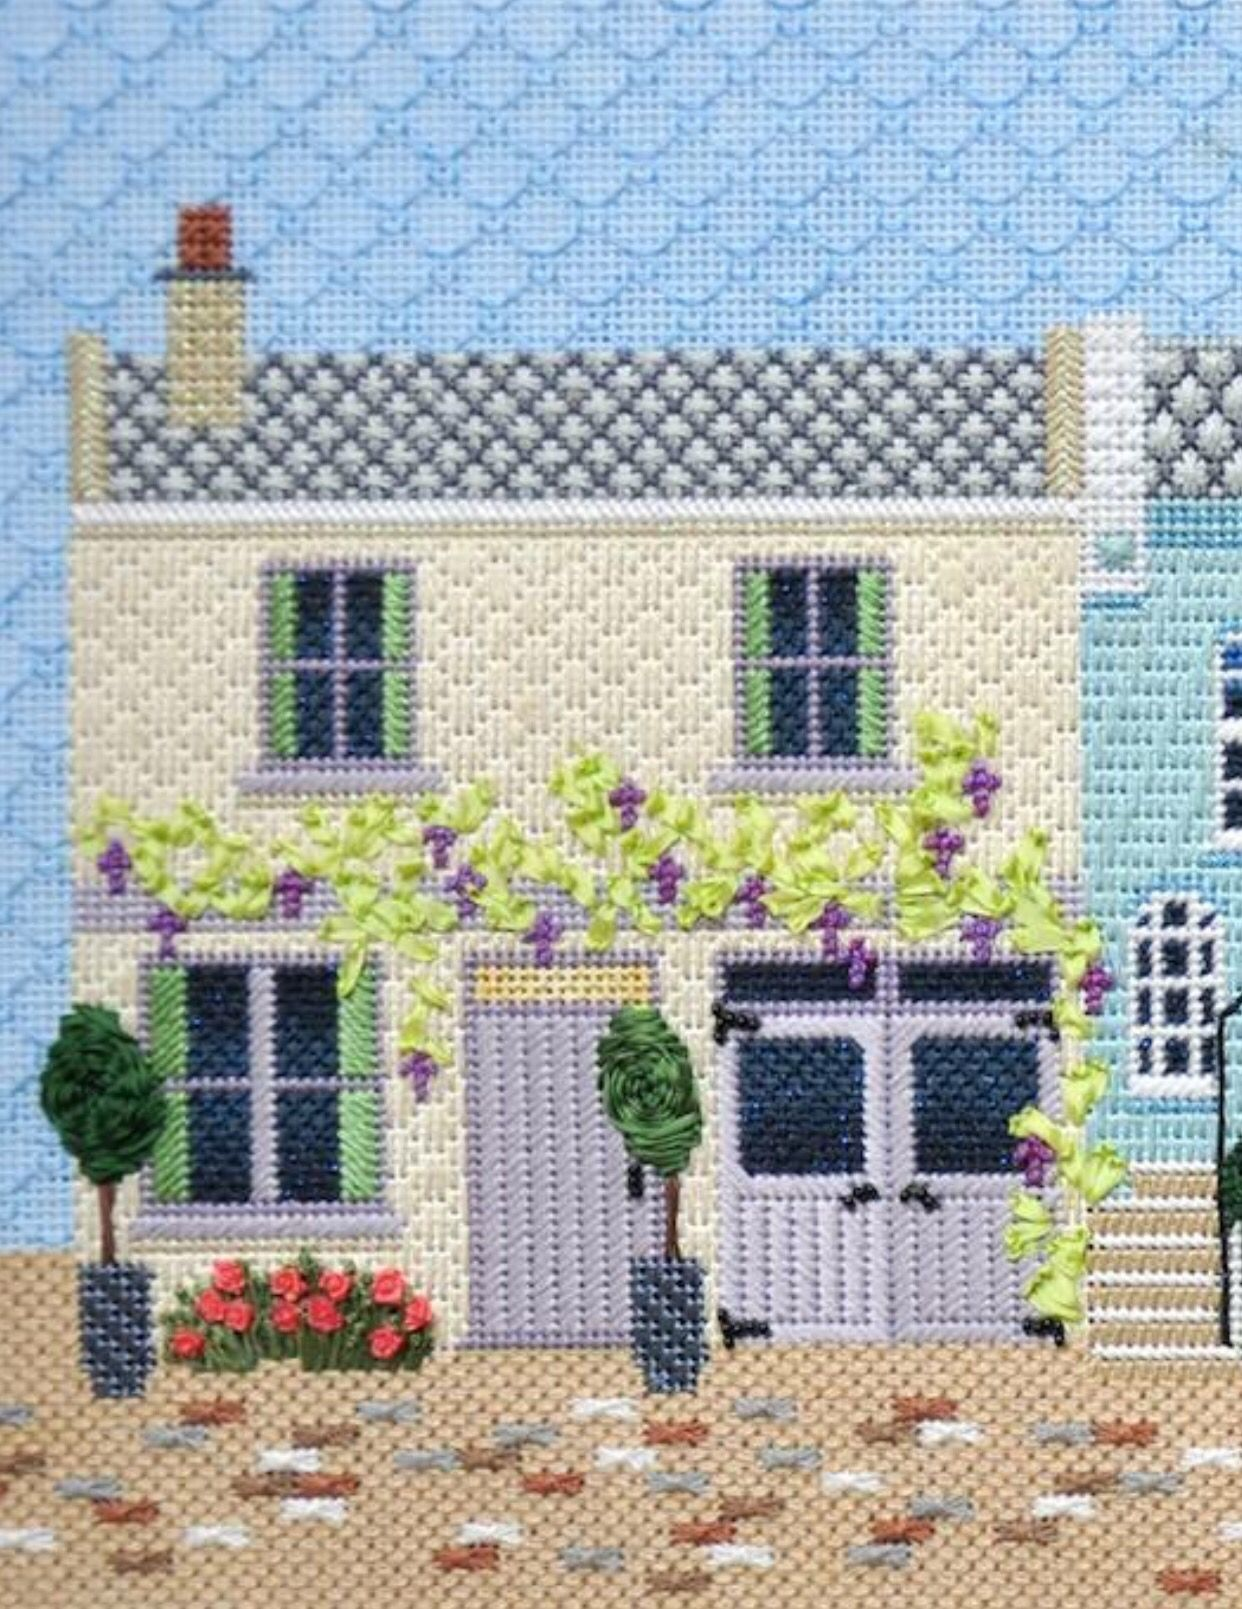 Mews house needlepoint from Kirk & Bradley                                                                                                                                                                                 More